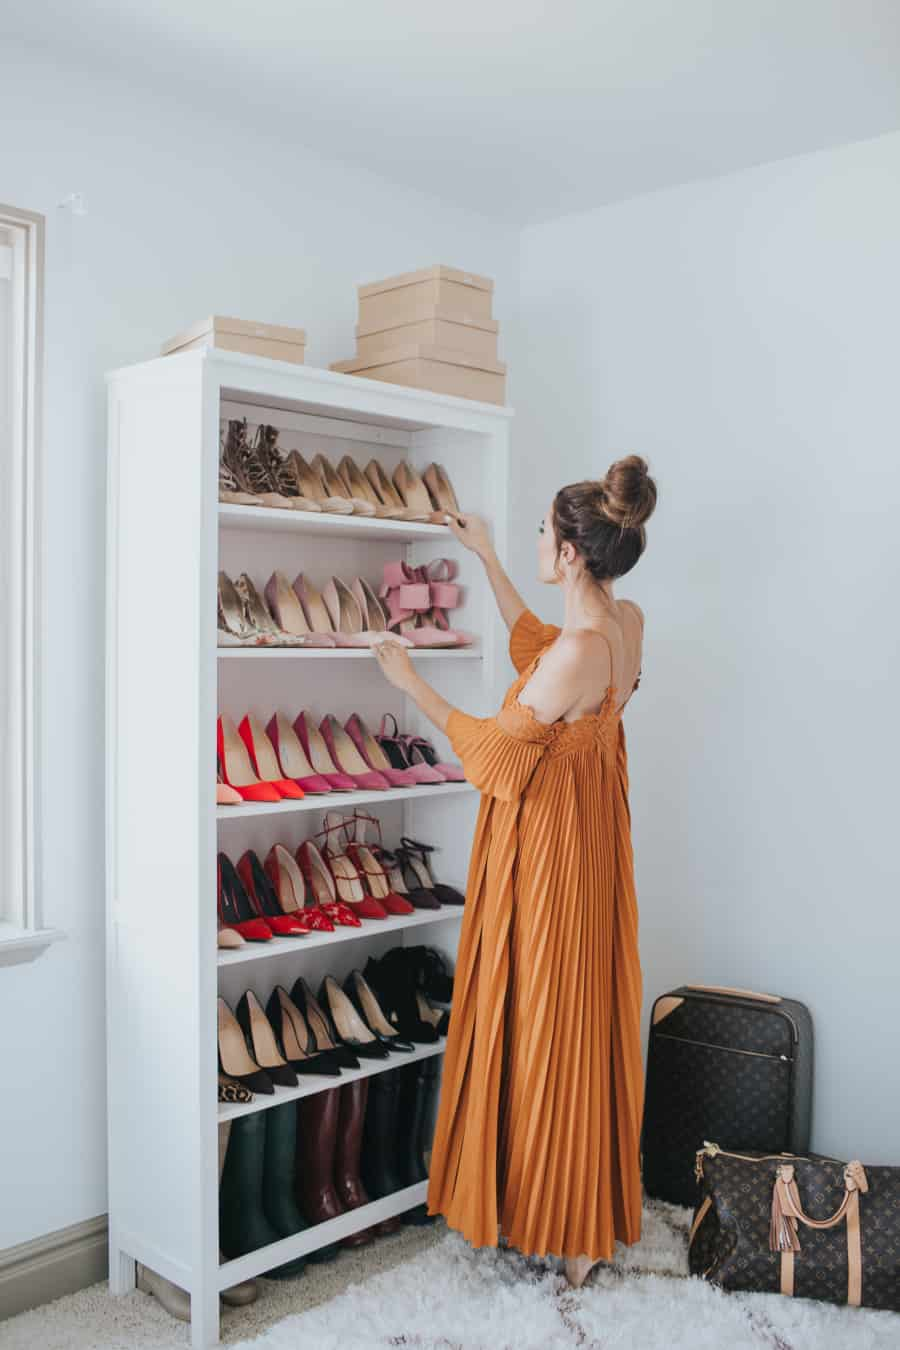 The most magnificent shoe shelf as a shoe storage idea.